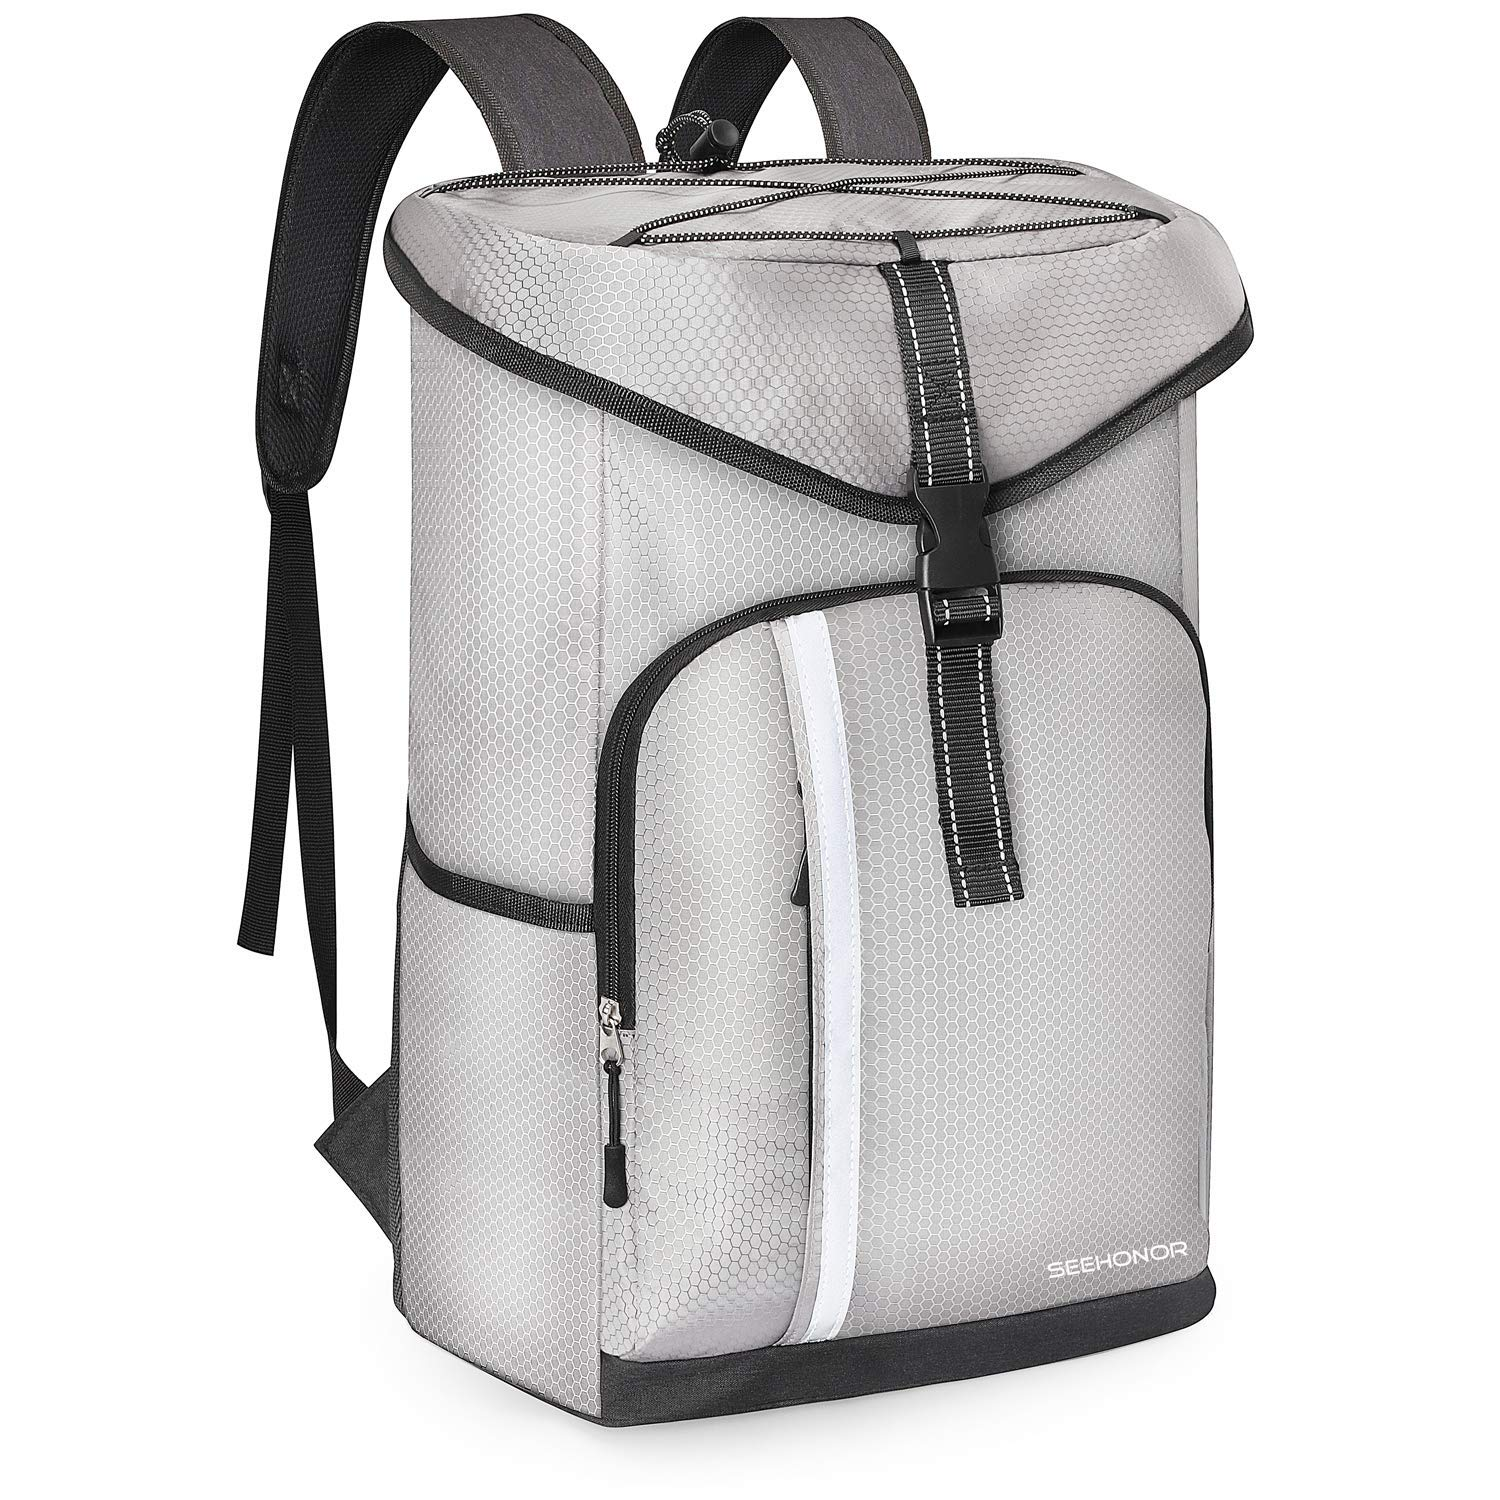 SEEHONOR Insulated Cooler Backpack Leakproof Soft Cooler Bag Lightweight Backpack Cooler with Bottle Opener for Lunch Picnic Hiking Camping Beach Fishing Travel Trips 30 Cans Silver